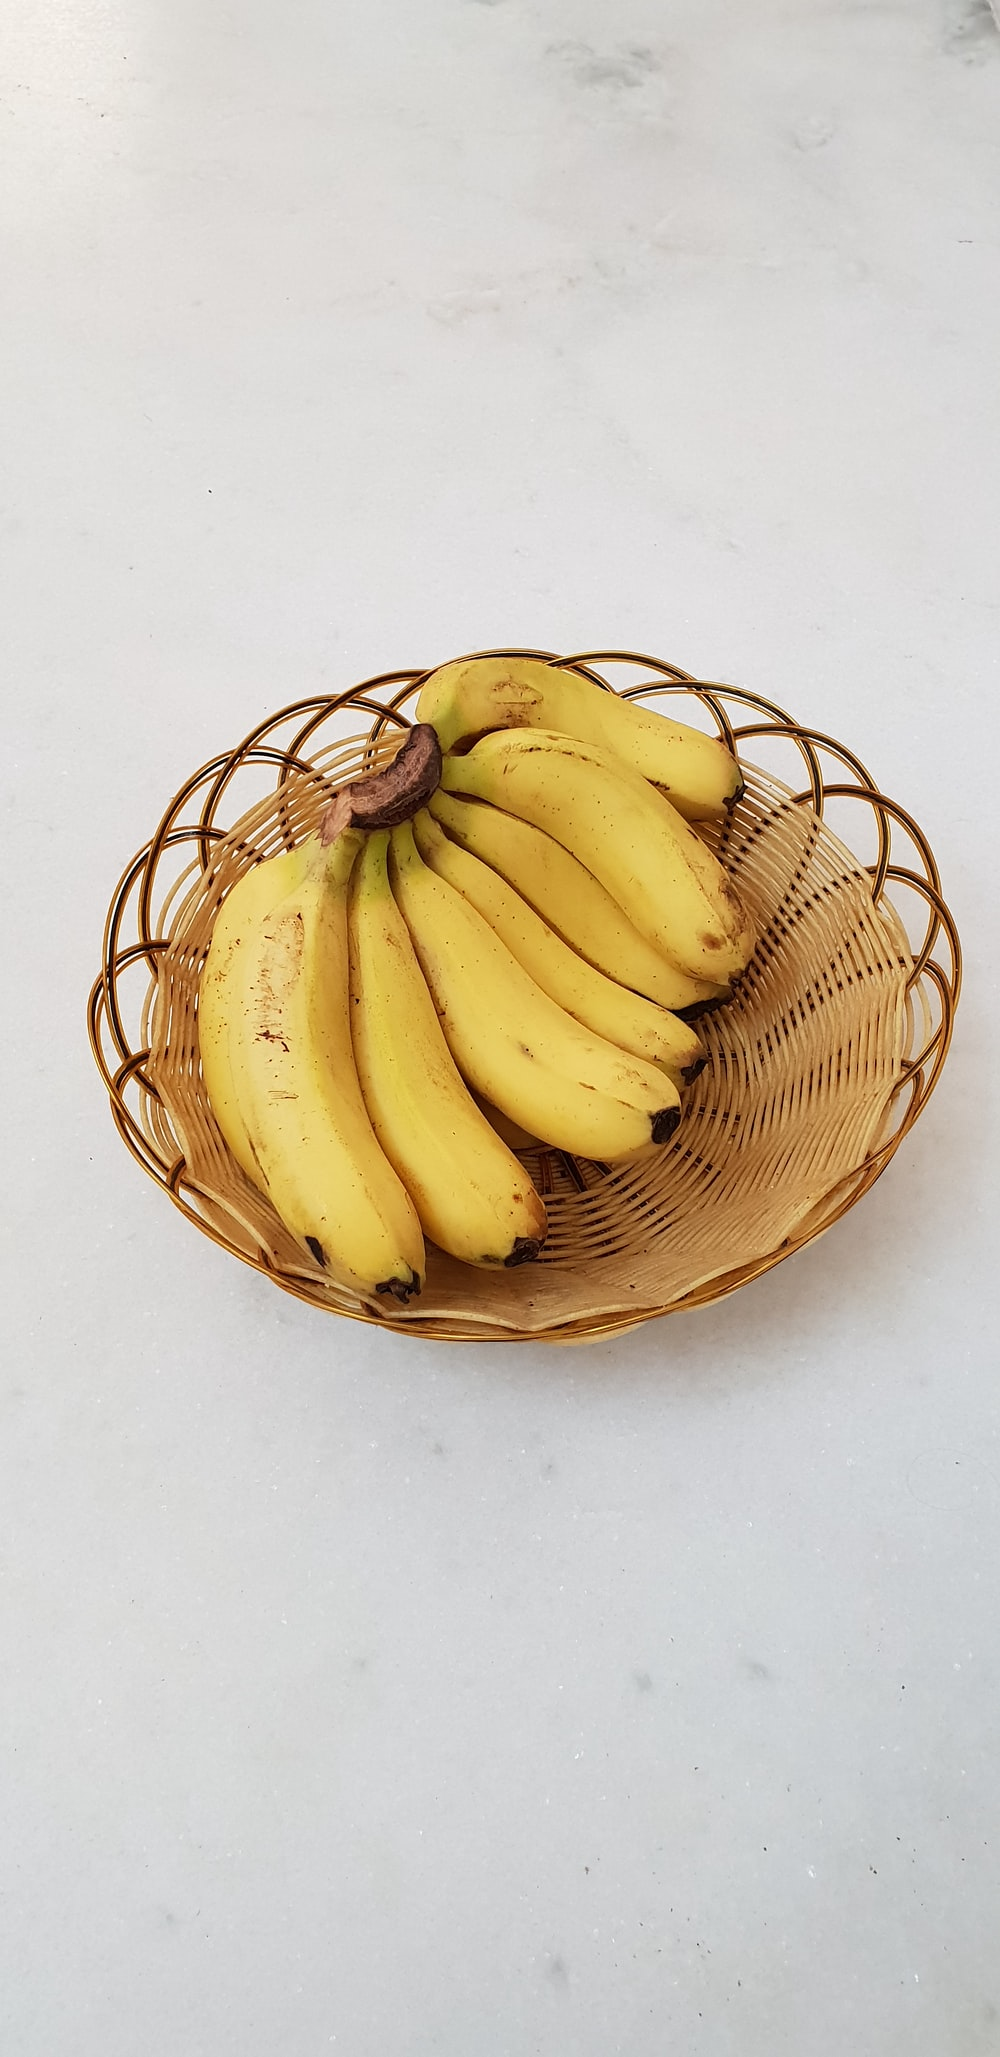 bunch of yellow bananas in a brown wicker bowl